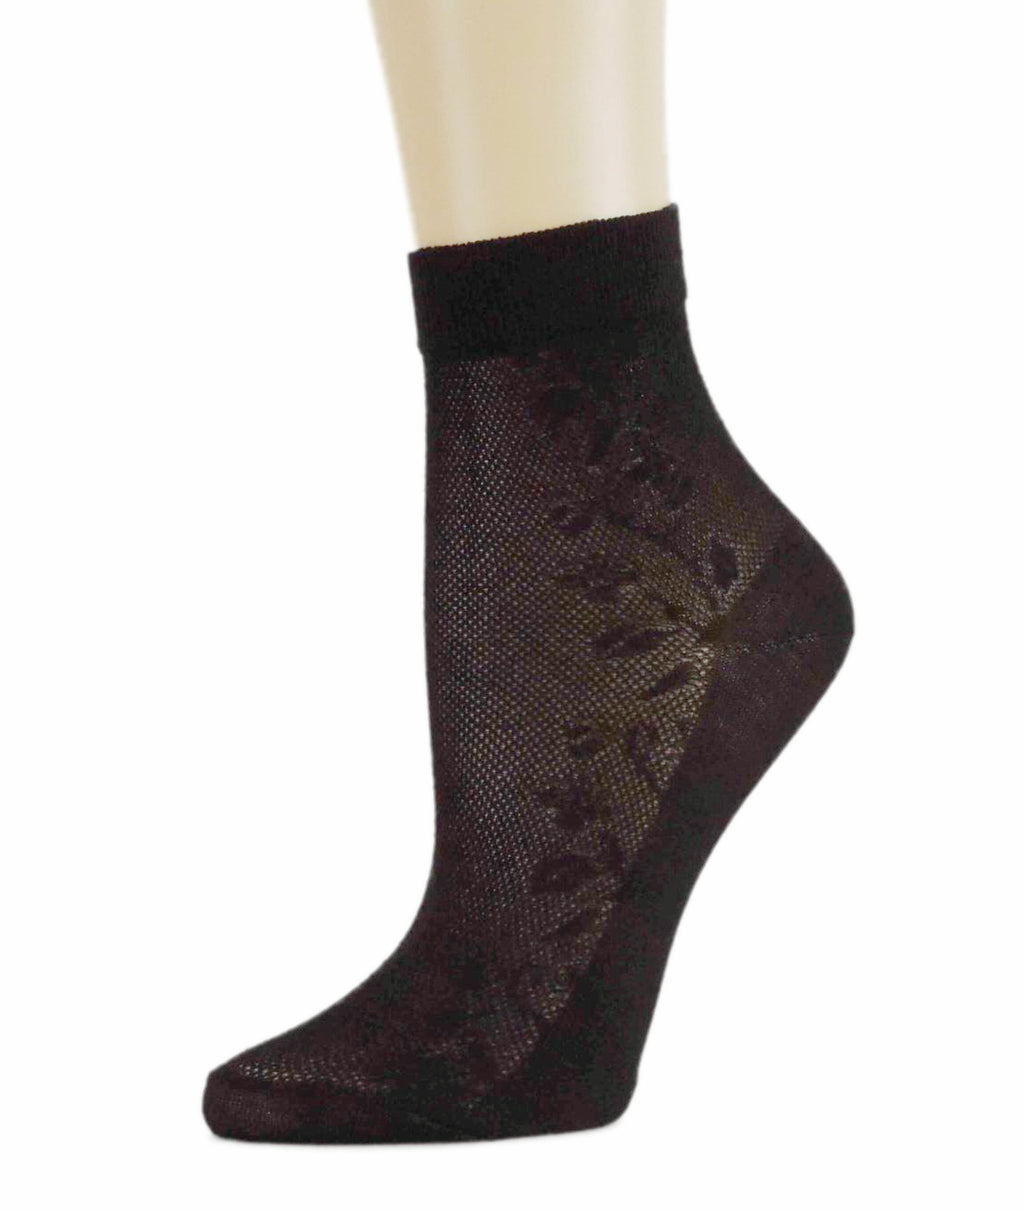 Soft Black Sheer Socks - Global Trendz Fashion®